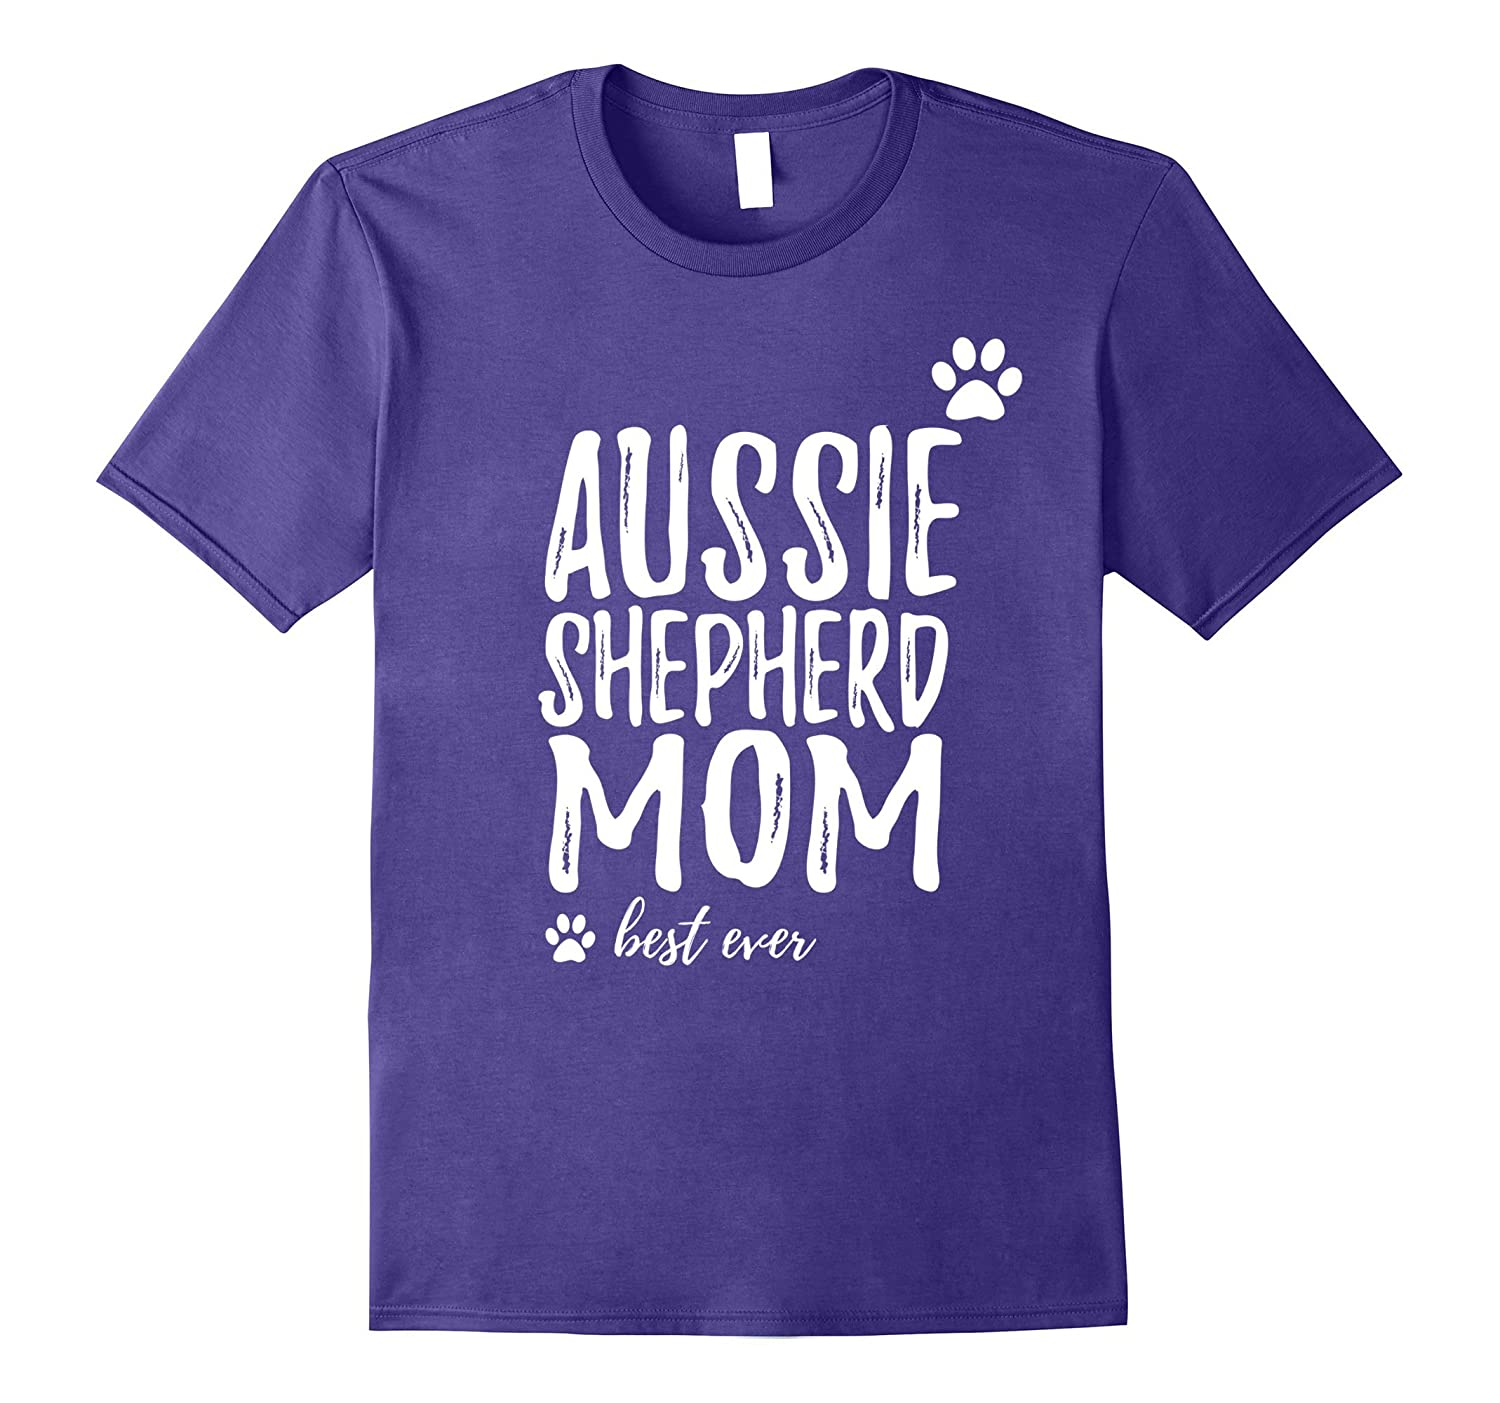 Aussie Shepherd Mom T-Shirt Australian Shepherd Dog Gift-Art